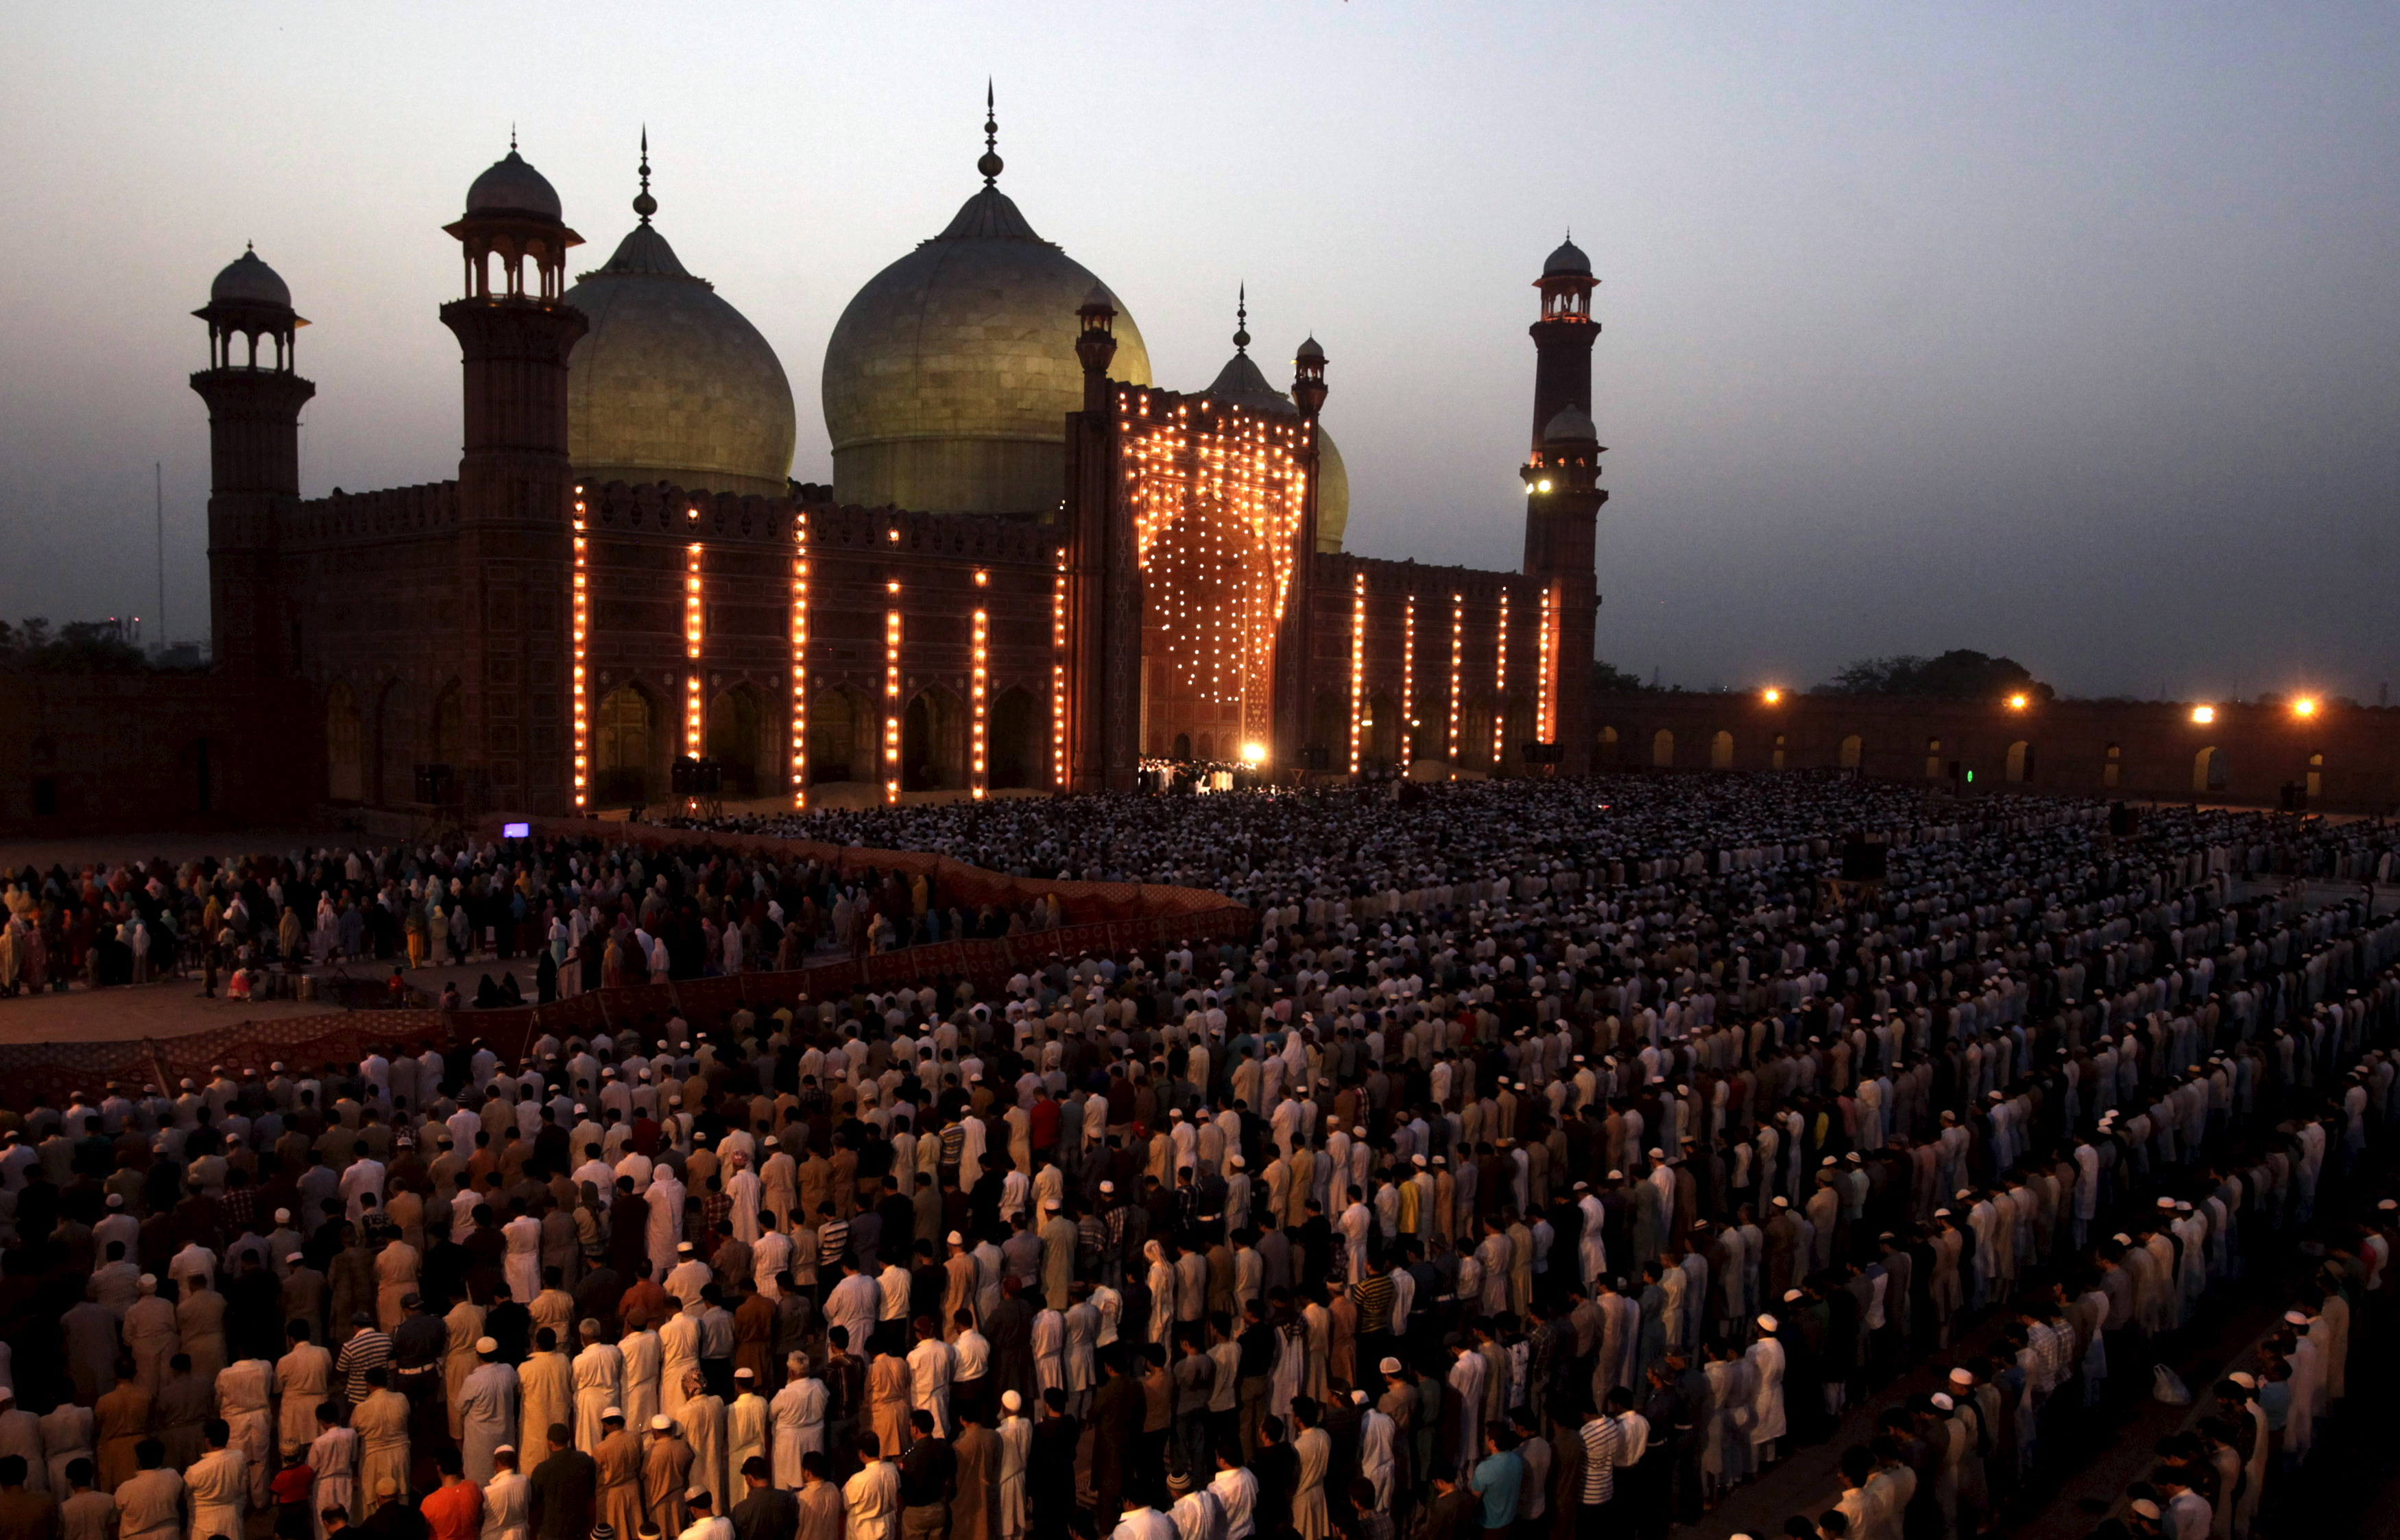 People say their prayers under the leadership of Saudi Arabian Imam of the Grand Mosque Sheikh Khalid al Ghamdi during evening prayers at the Badshahi mosque in Lahore, Pakistan, April 25, 2015. REUTERS/Mohsin Raza      TPX IMAGES OF THE DAY      - GF10000072568